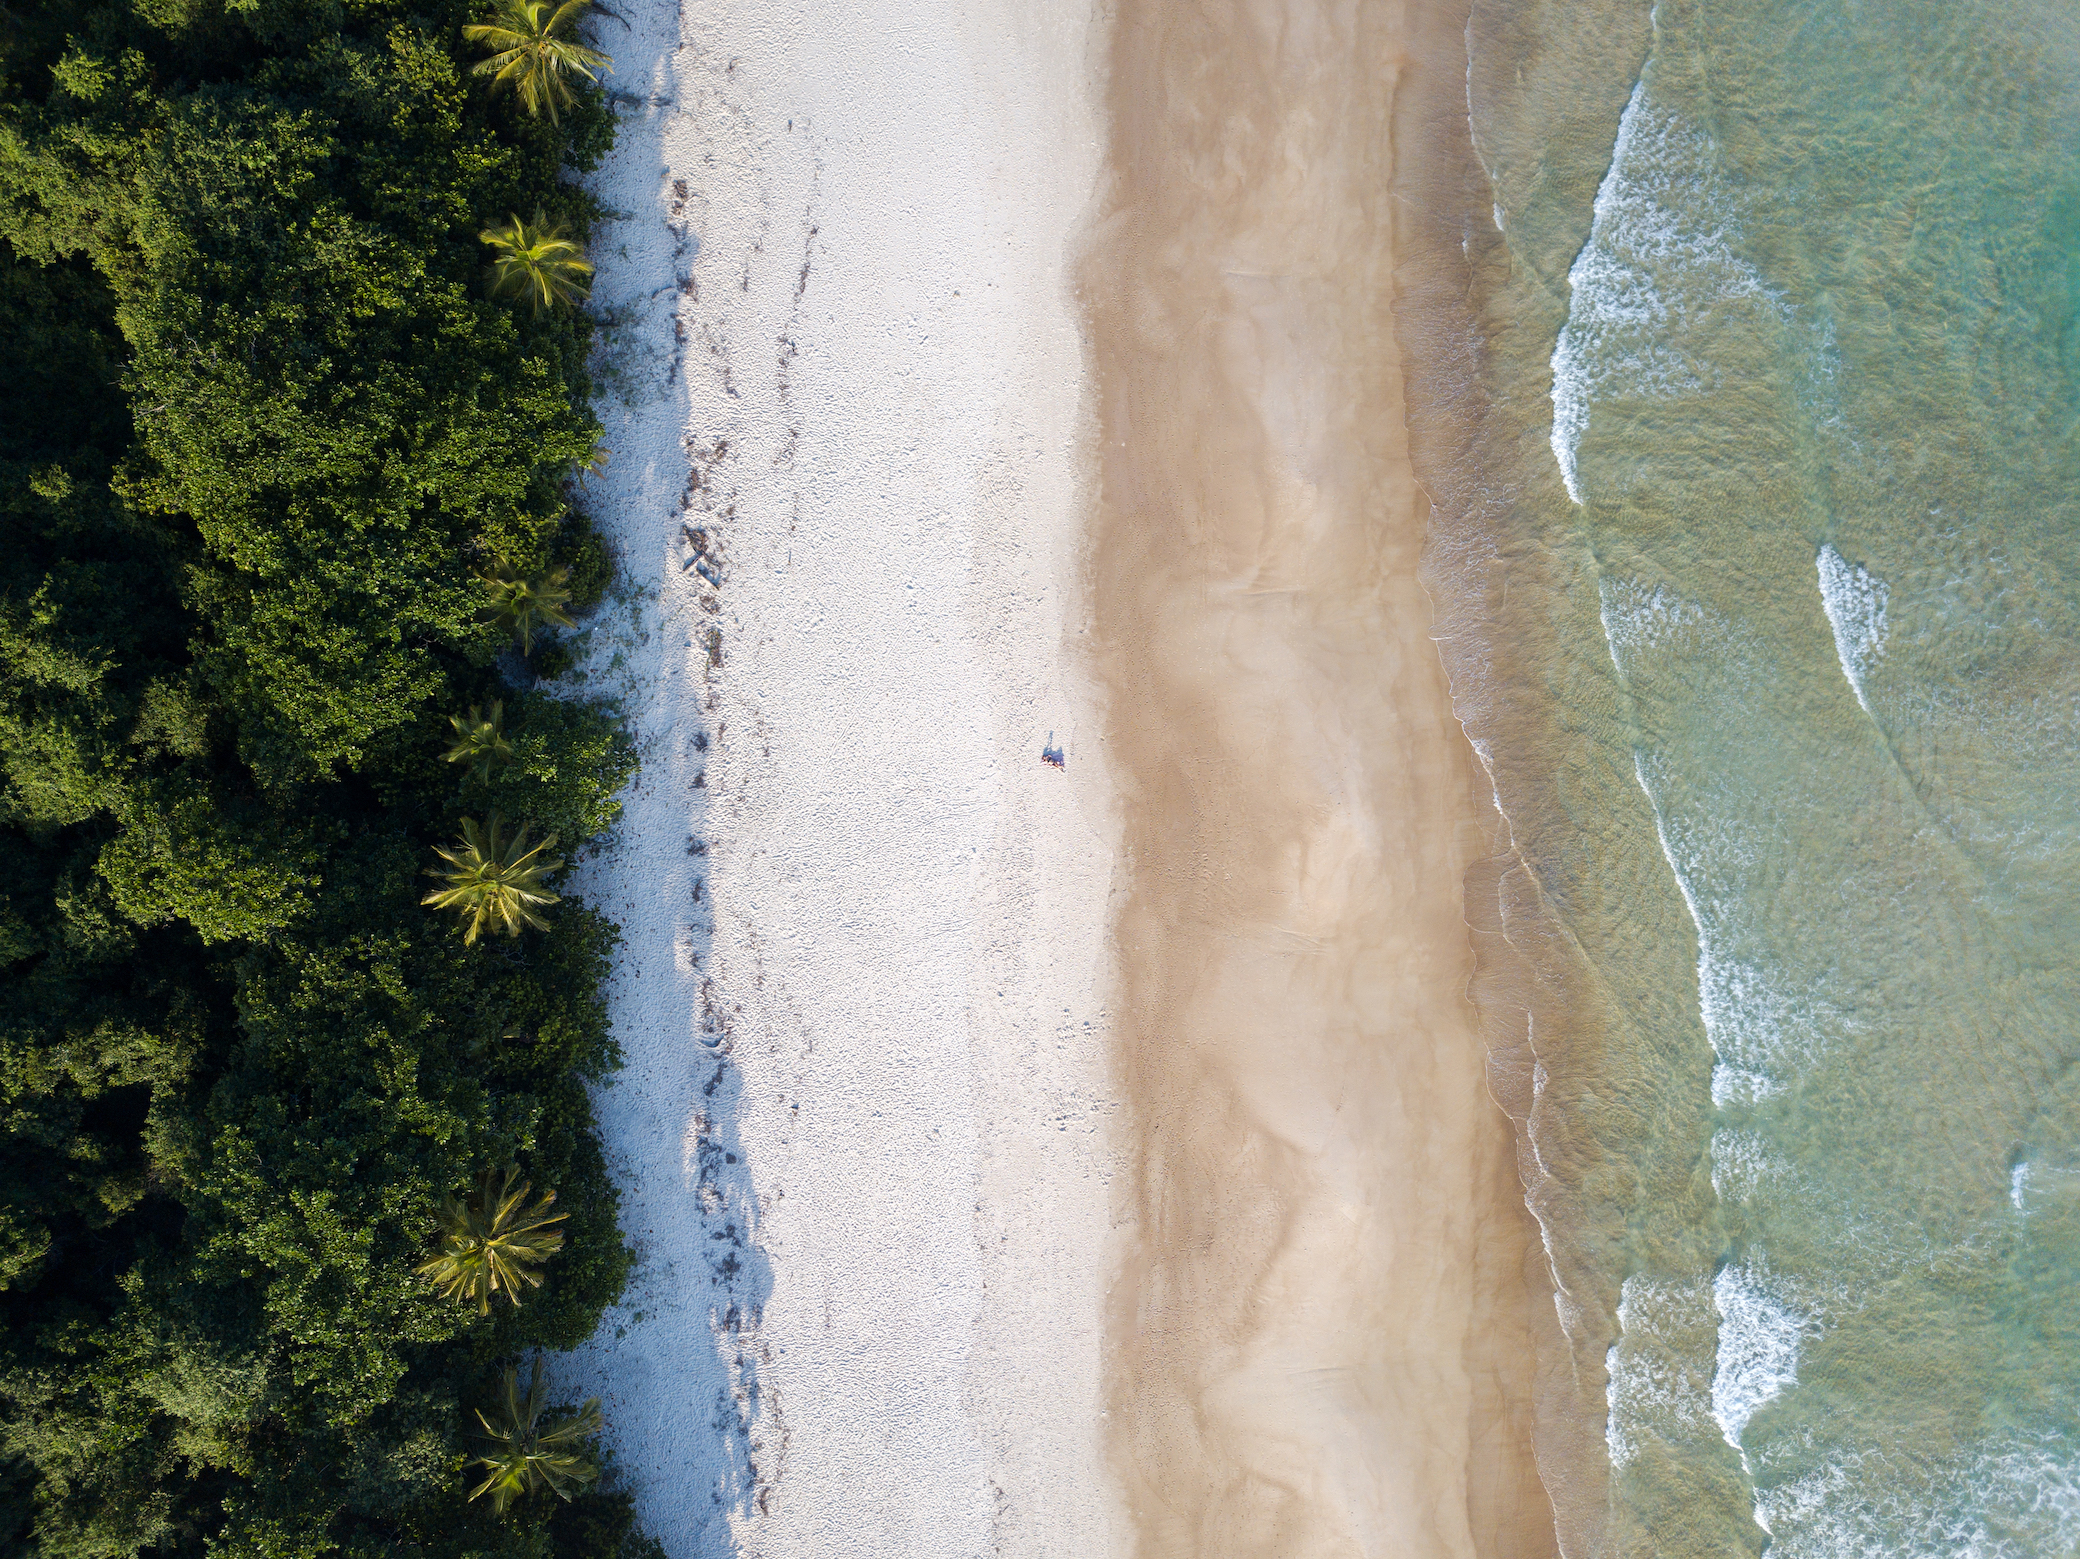 Lopes Mendes beach on Ilha Grande in Brazil from above